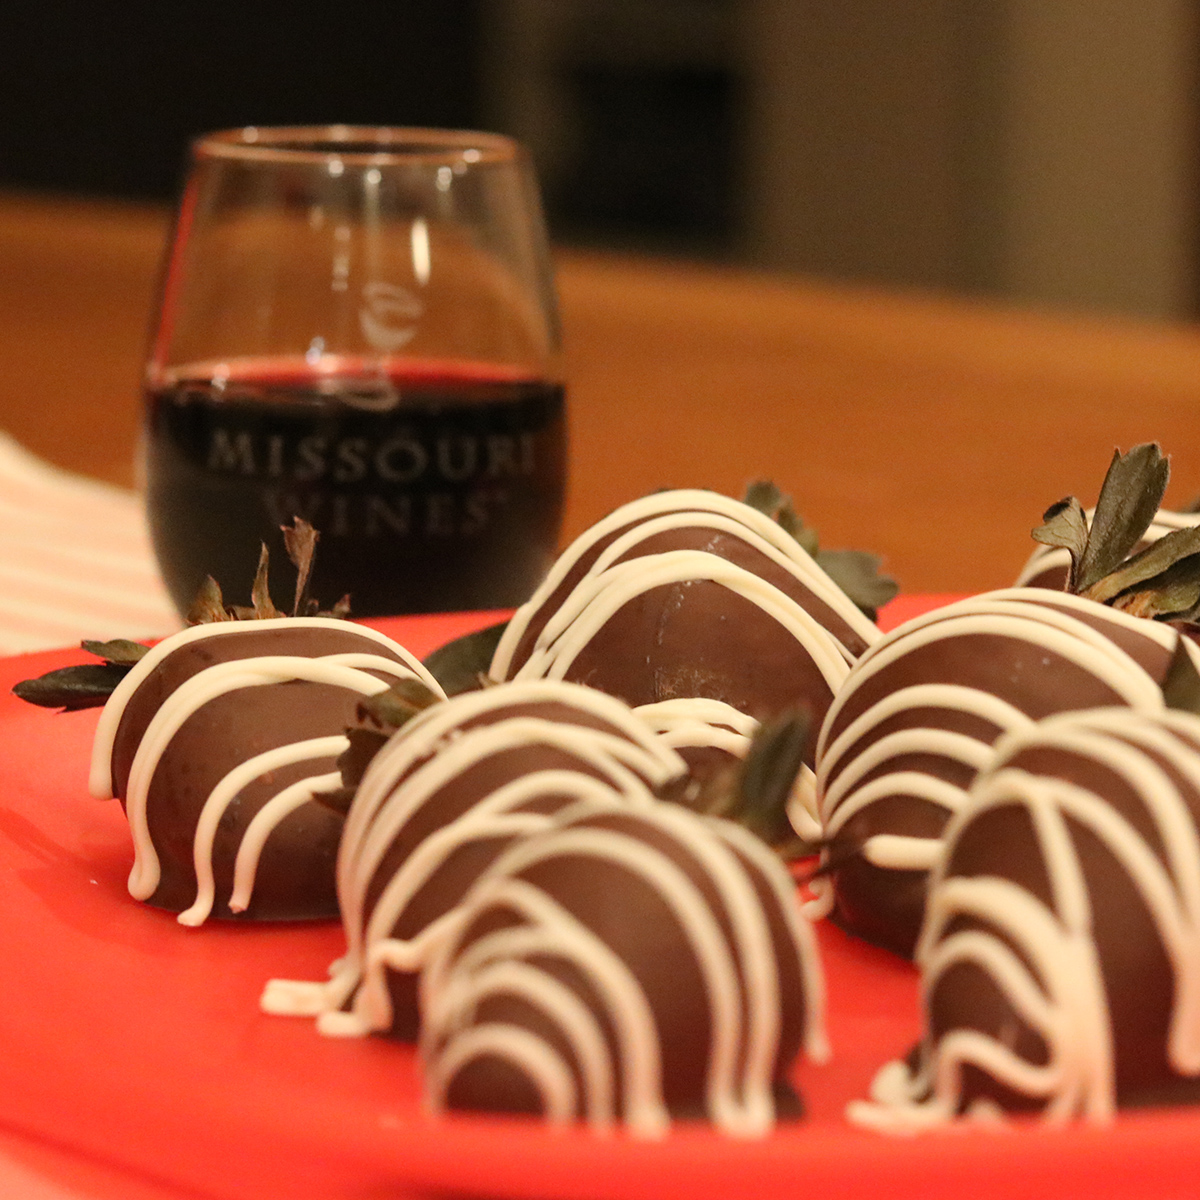 Wine Infused Chocolate Covered Strawberries from MissouriWine.org